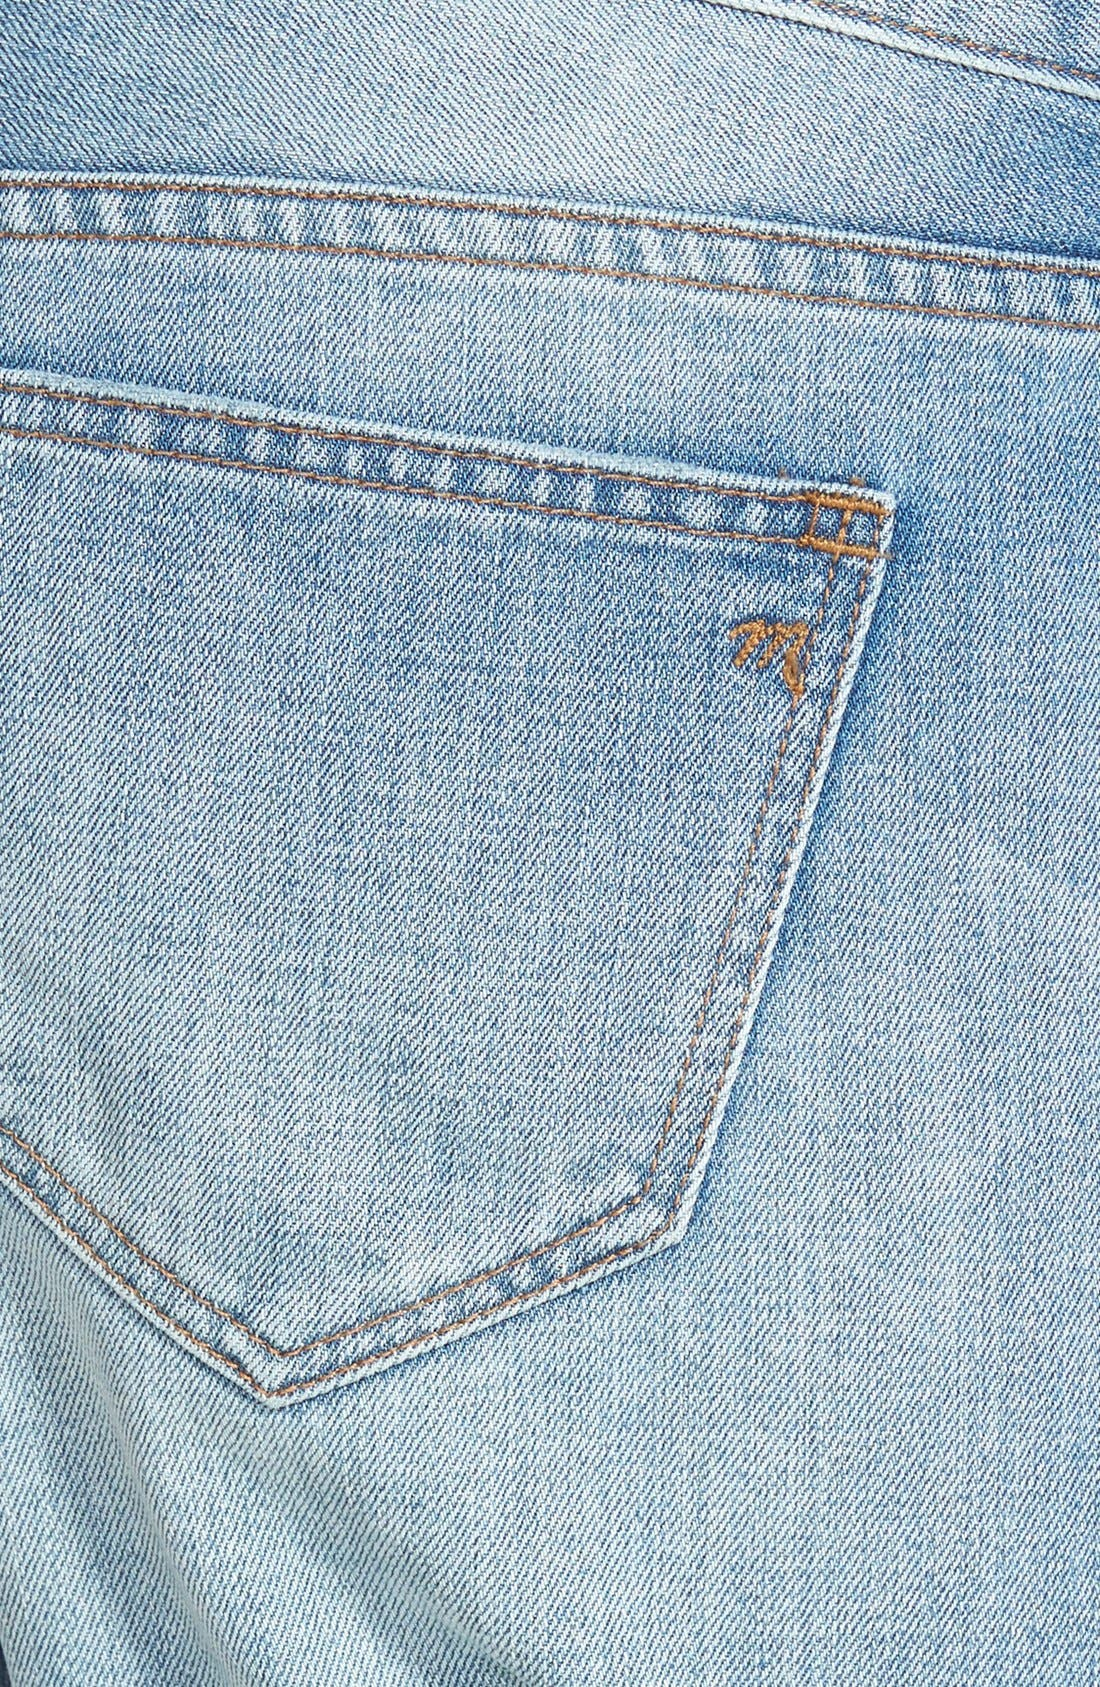 Alternate Image 3  - Madewell 'Rip & Repair' Denim Boyfriend Shorts (Conor)